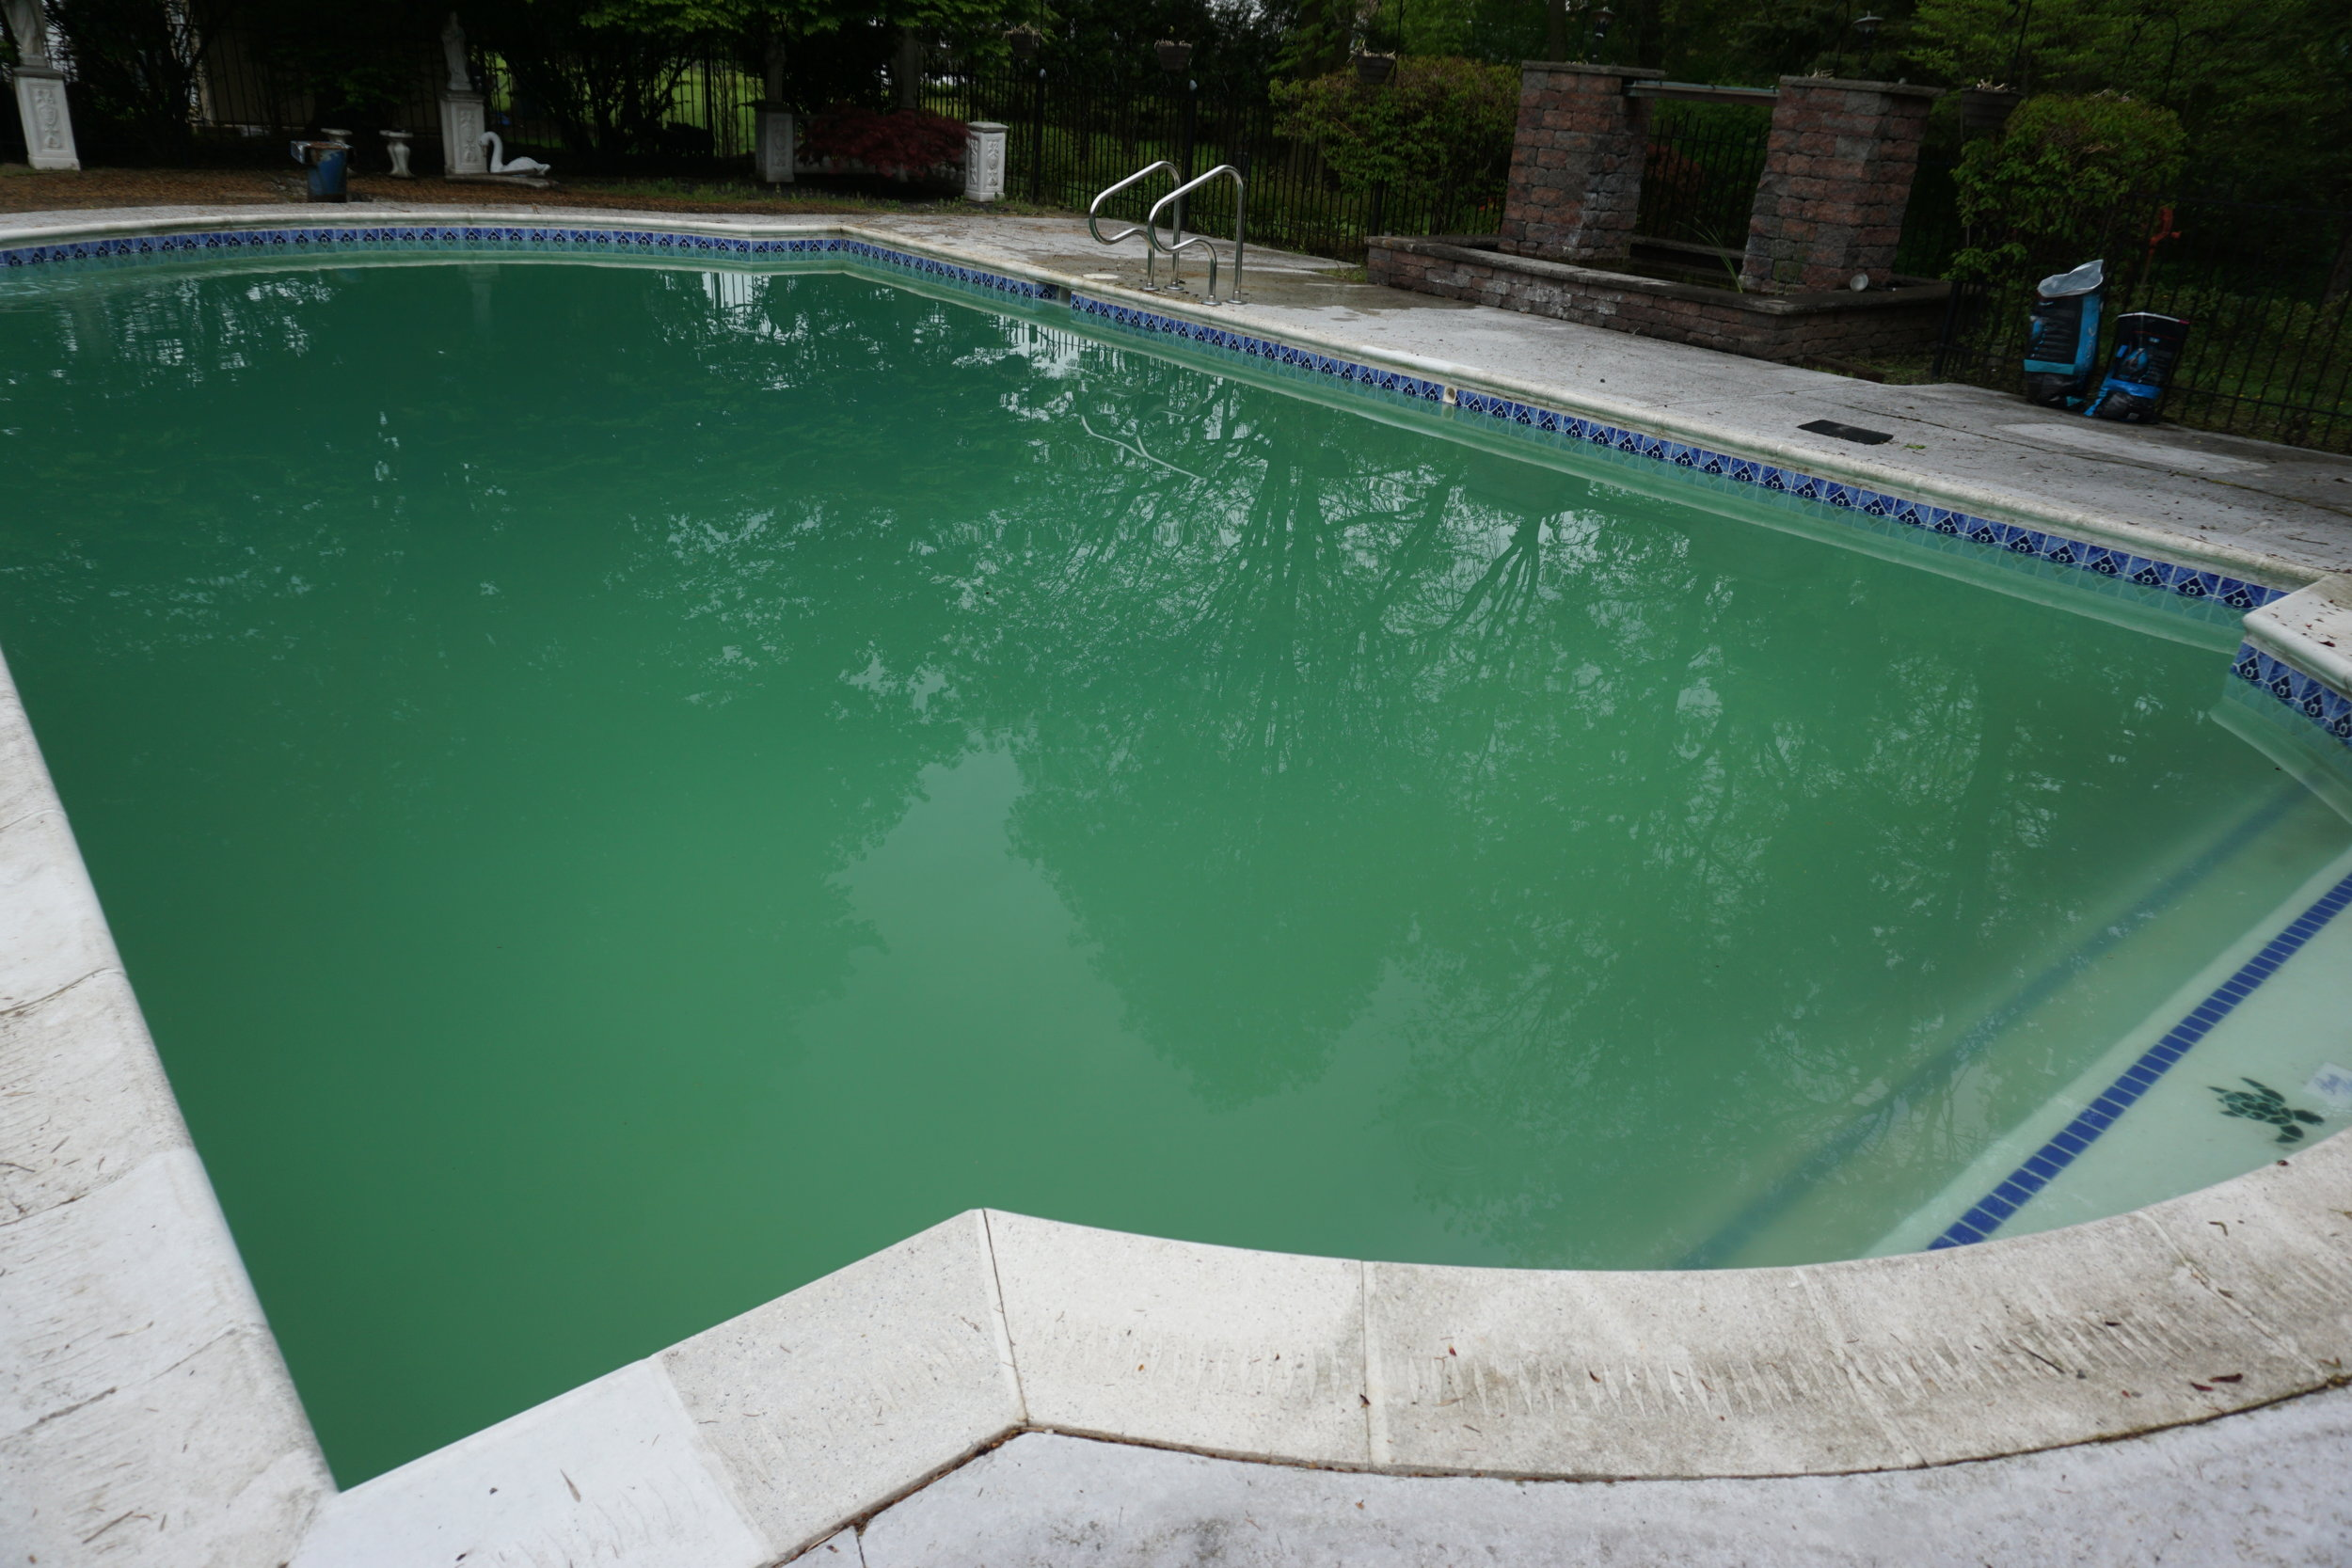 After a heavy shock treatment and brushing, the water was very foggy requiring Power Floc™